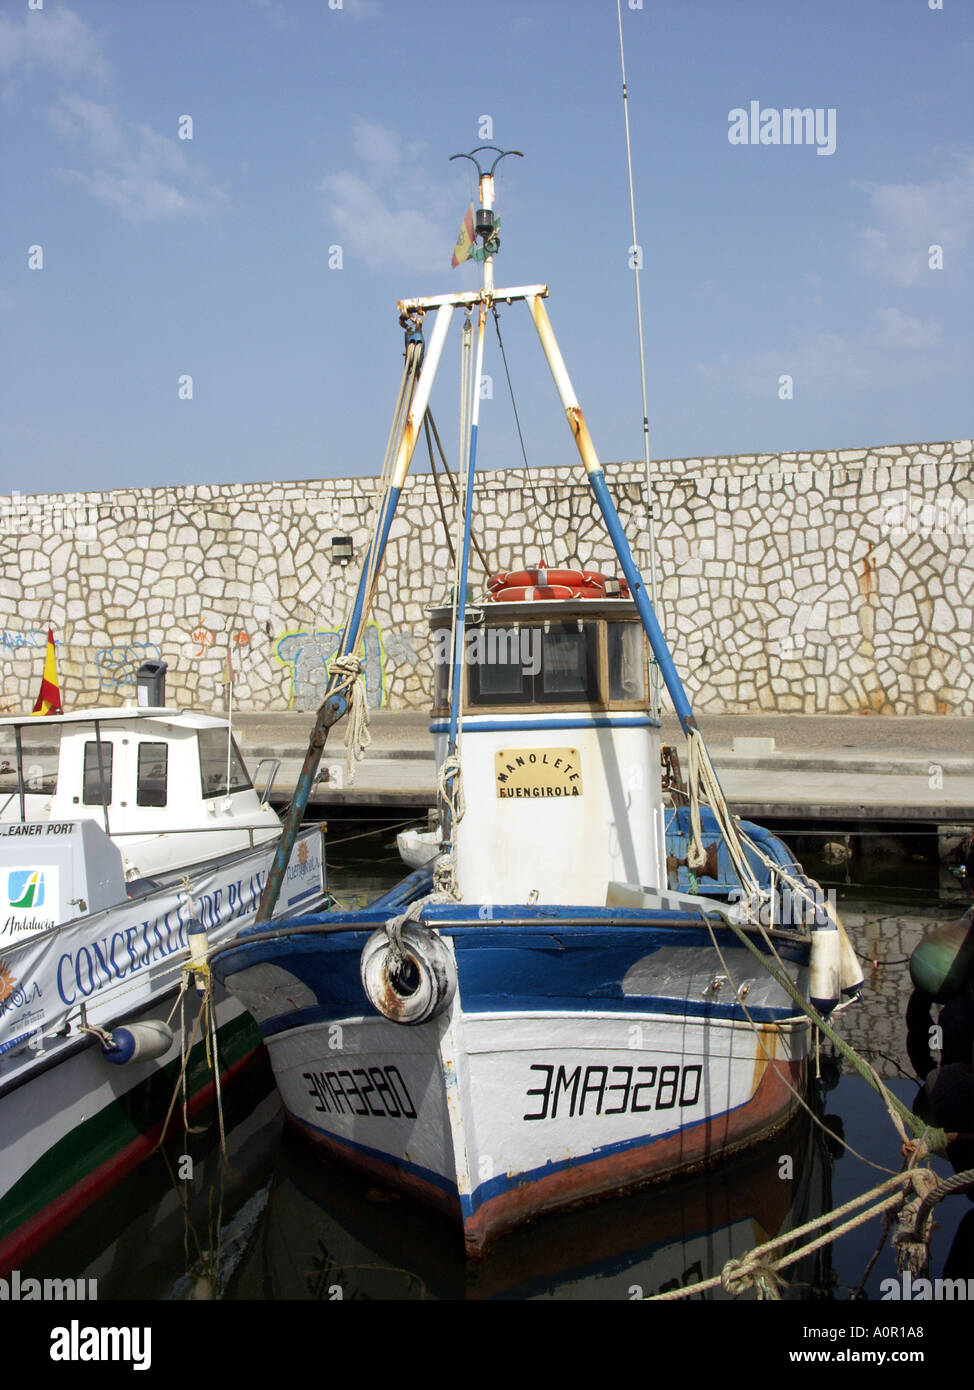 Fishing Boats, Nets and Tackle, Fuengirola Port, Costa del Sol, Andalucia, Spain - Stock Image